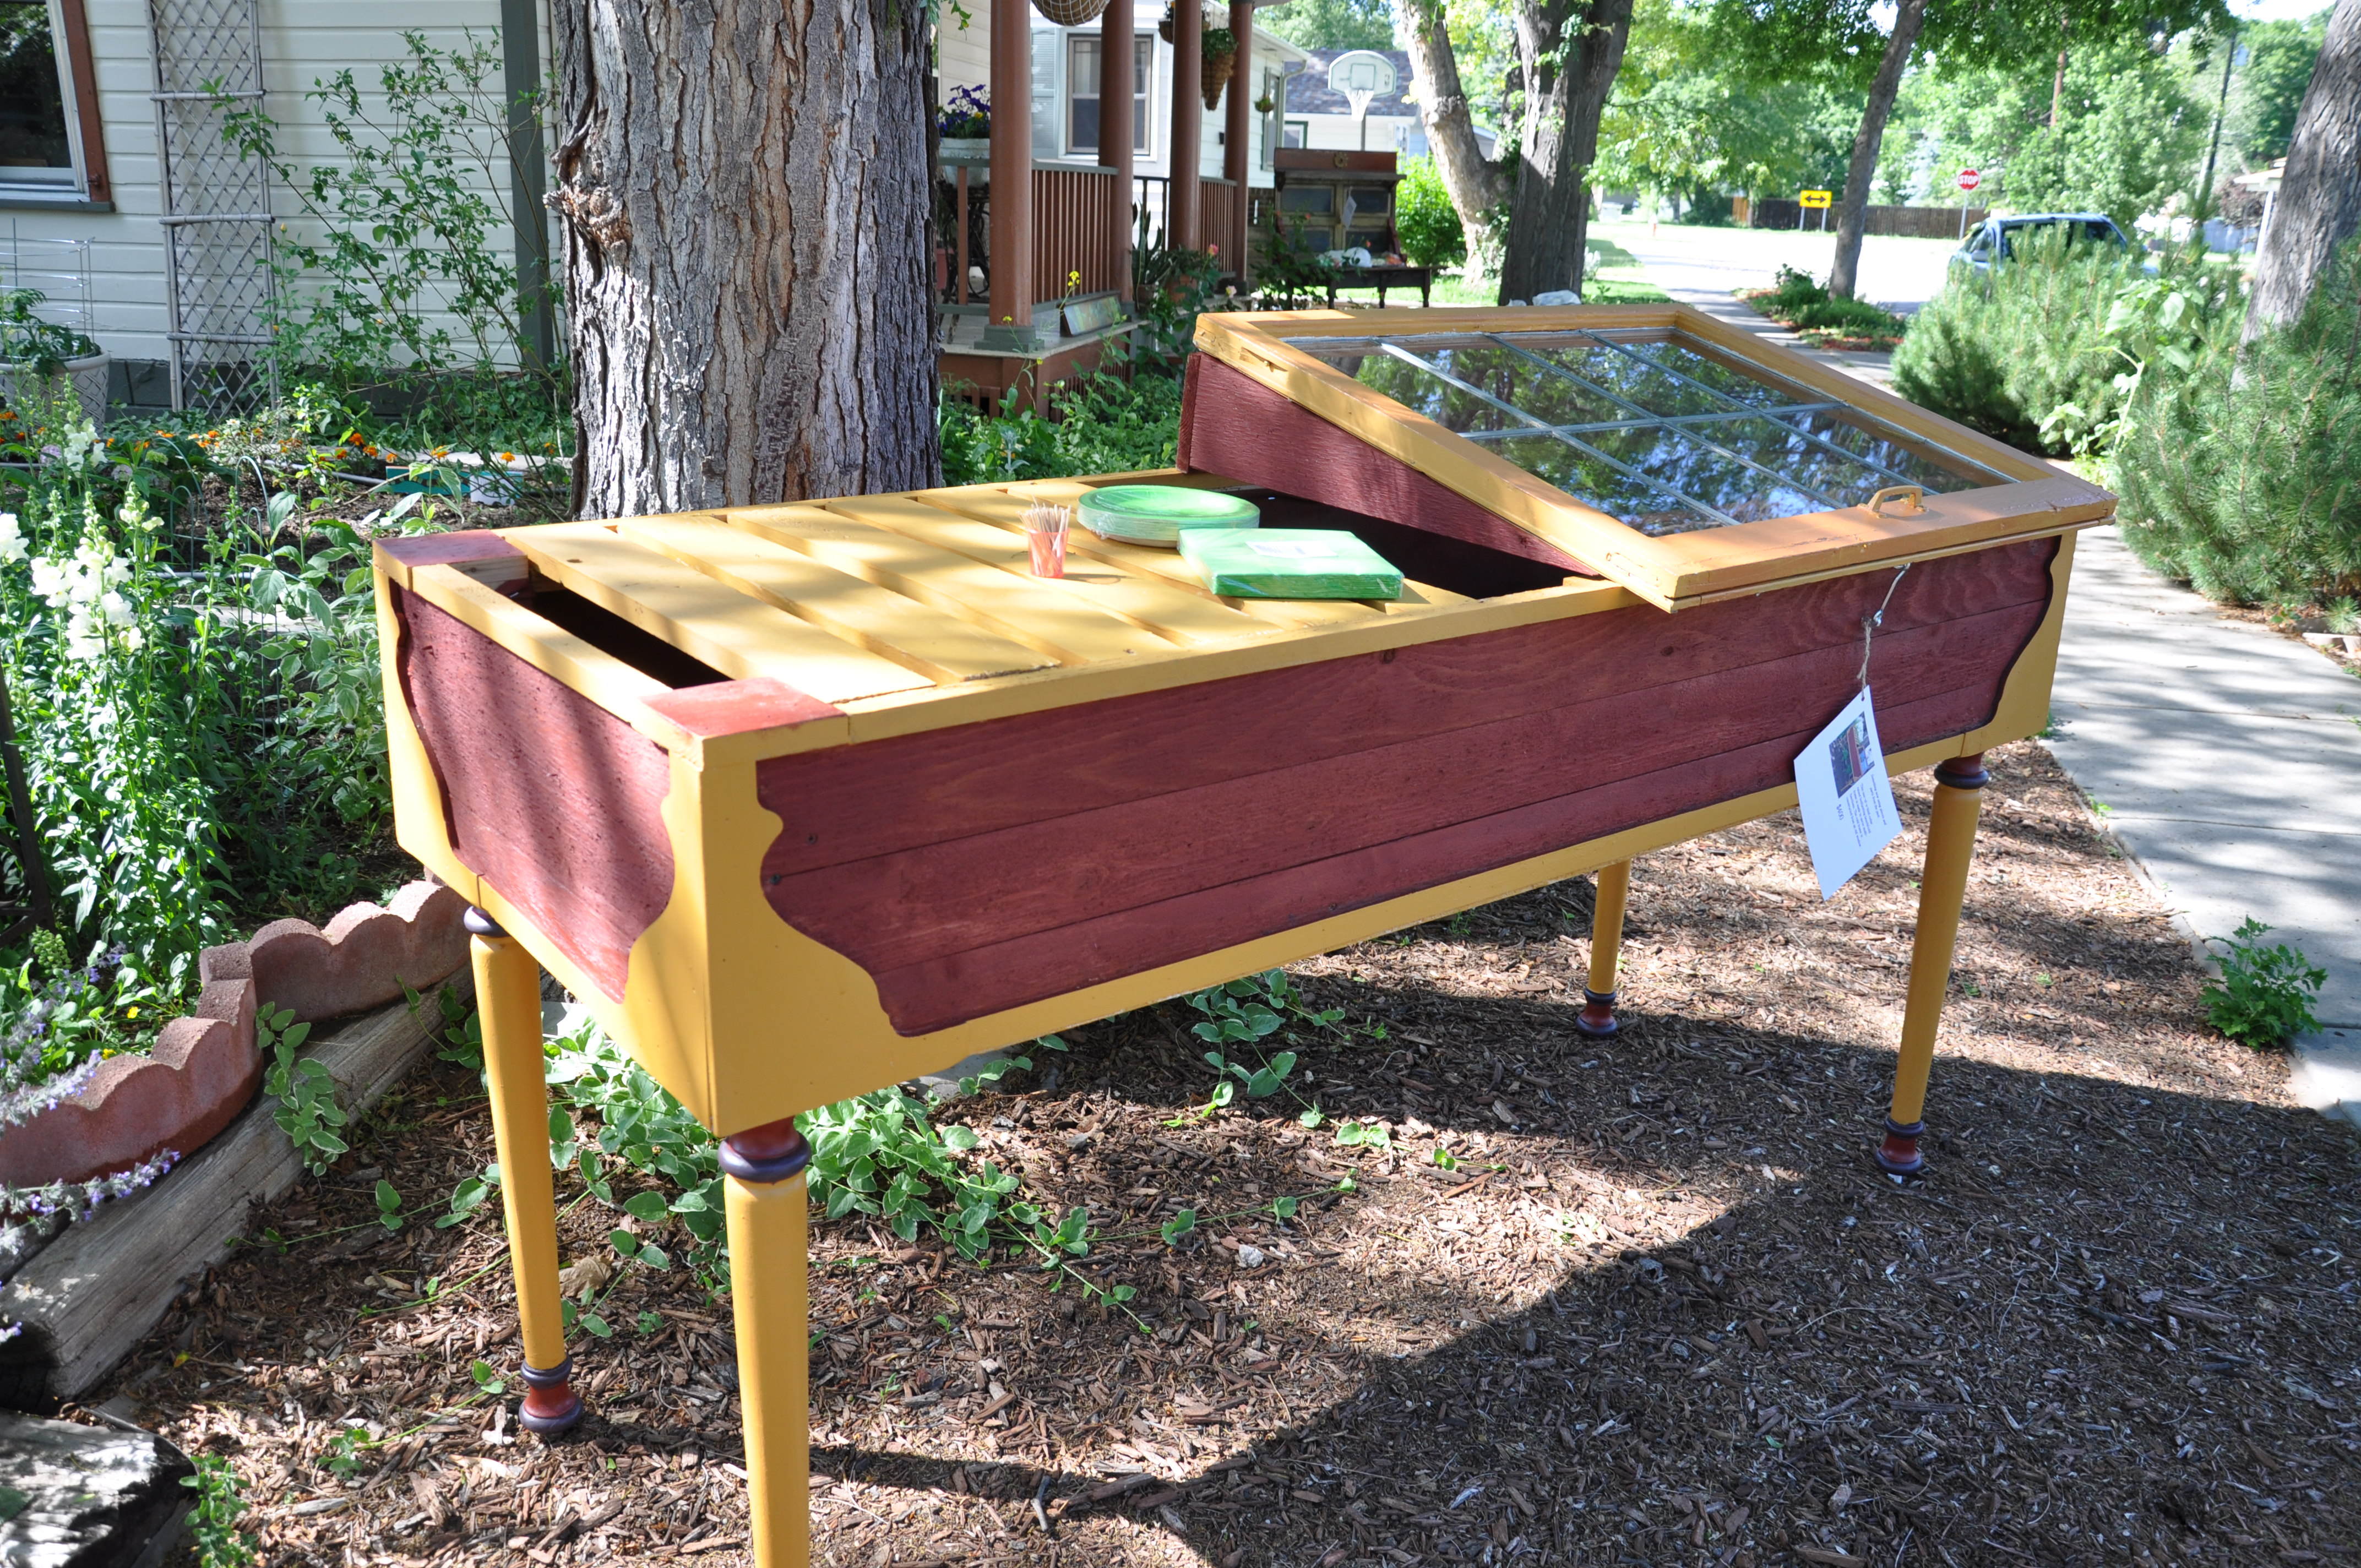 DIY Greenhouse Bench Plans PDF Download woodworking biscuit cutter ...